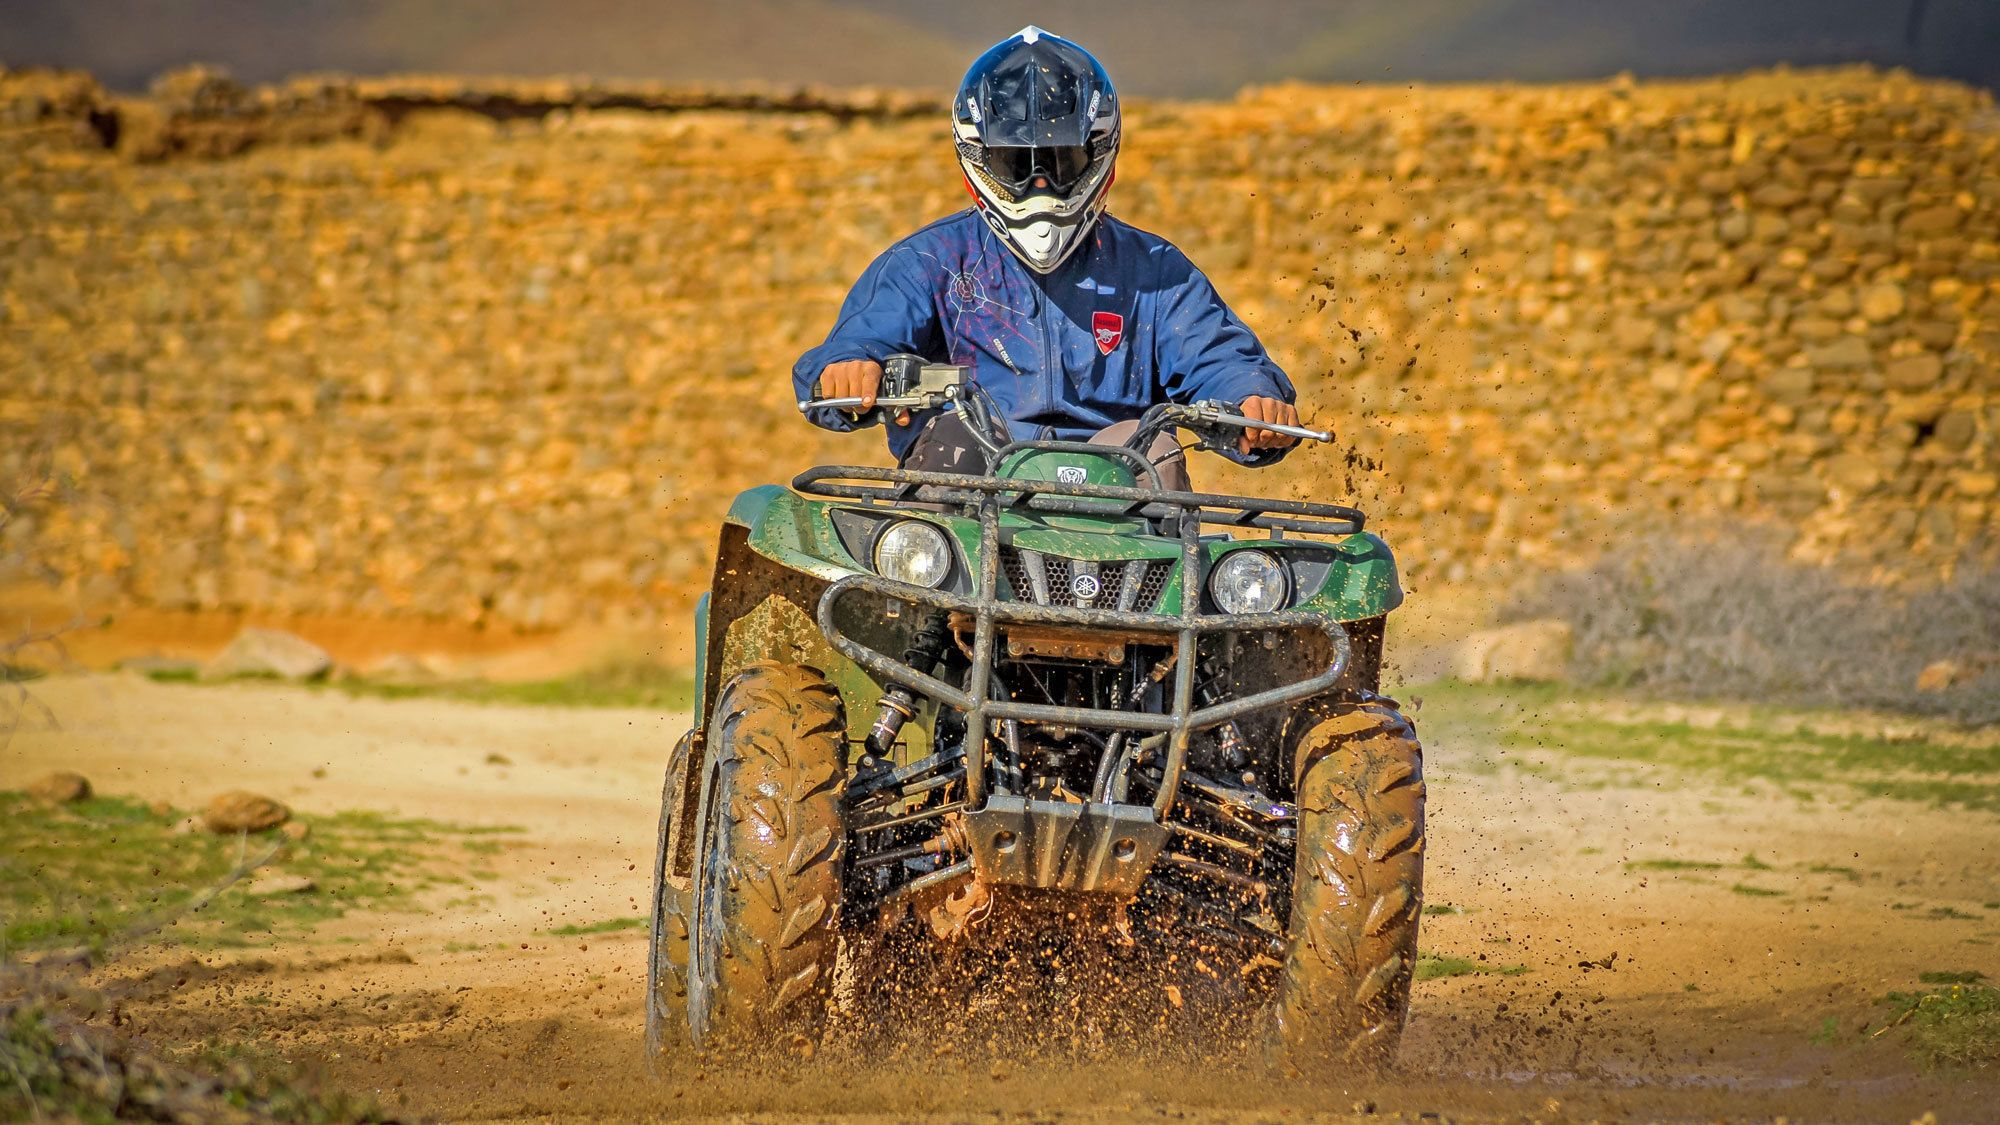 riding a quad bike through the muddy road in Morocco